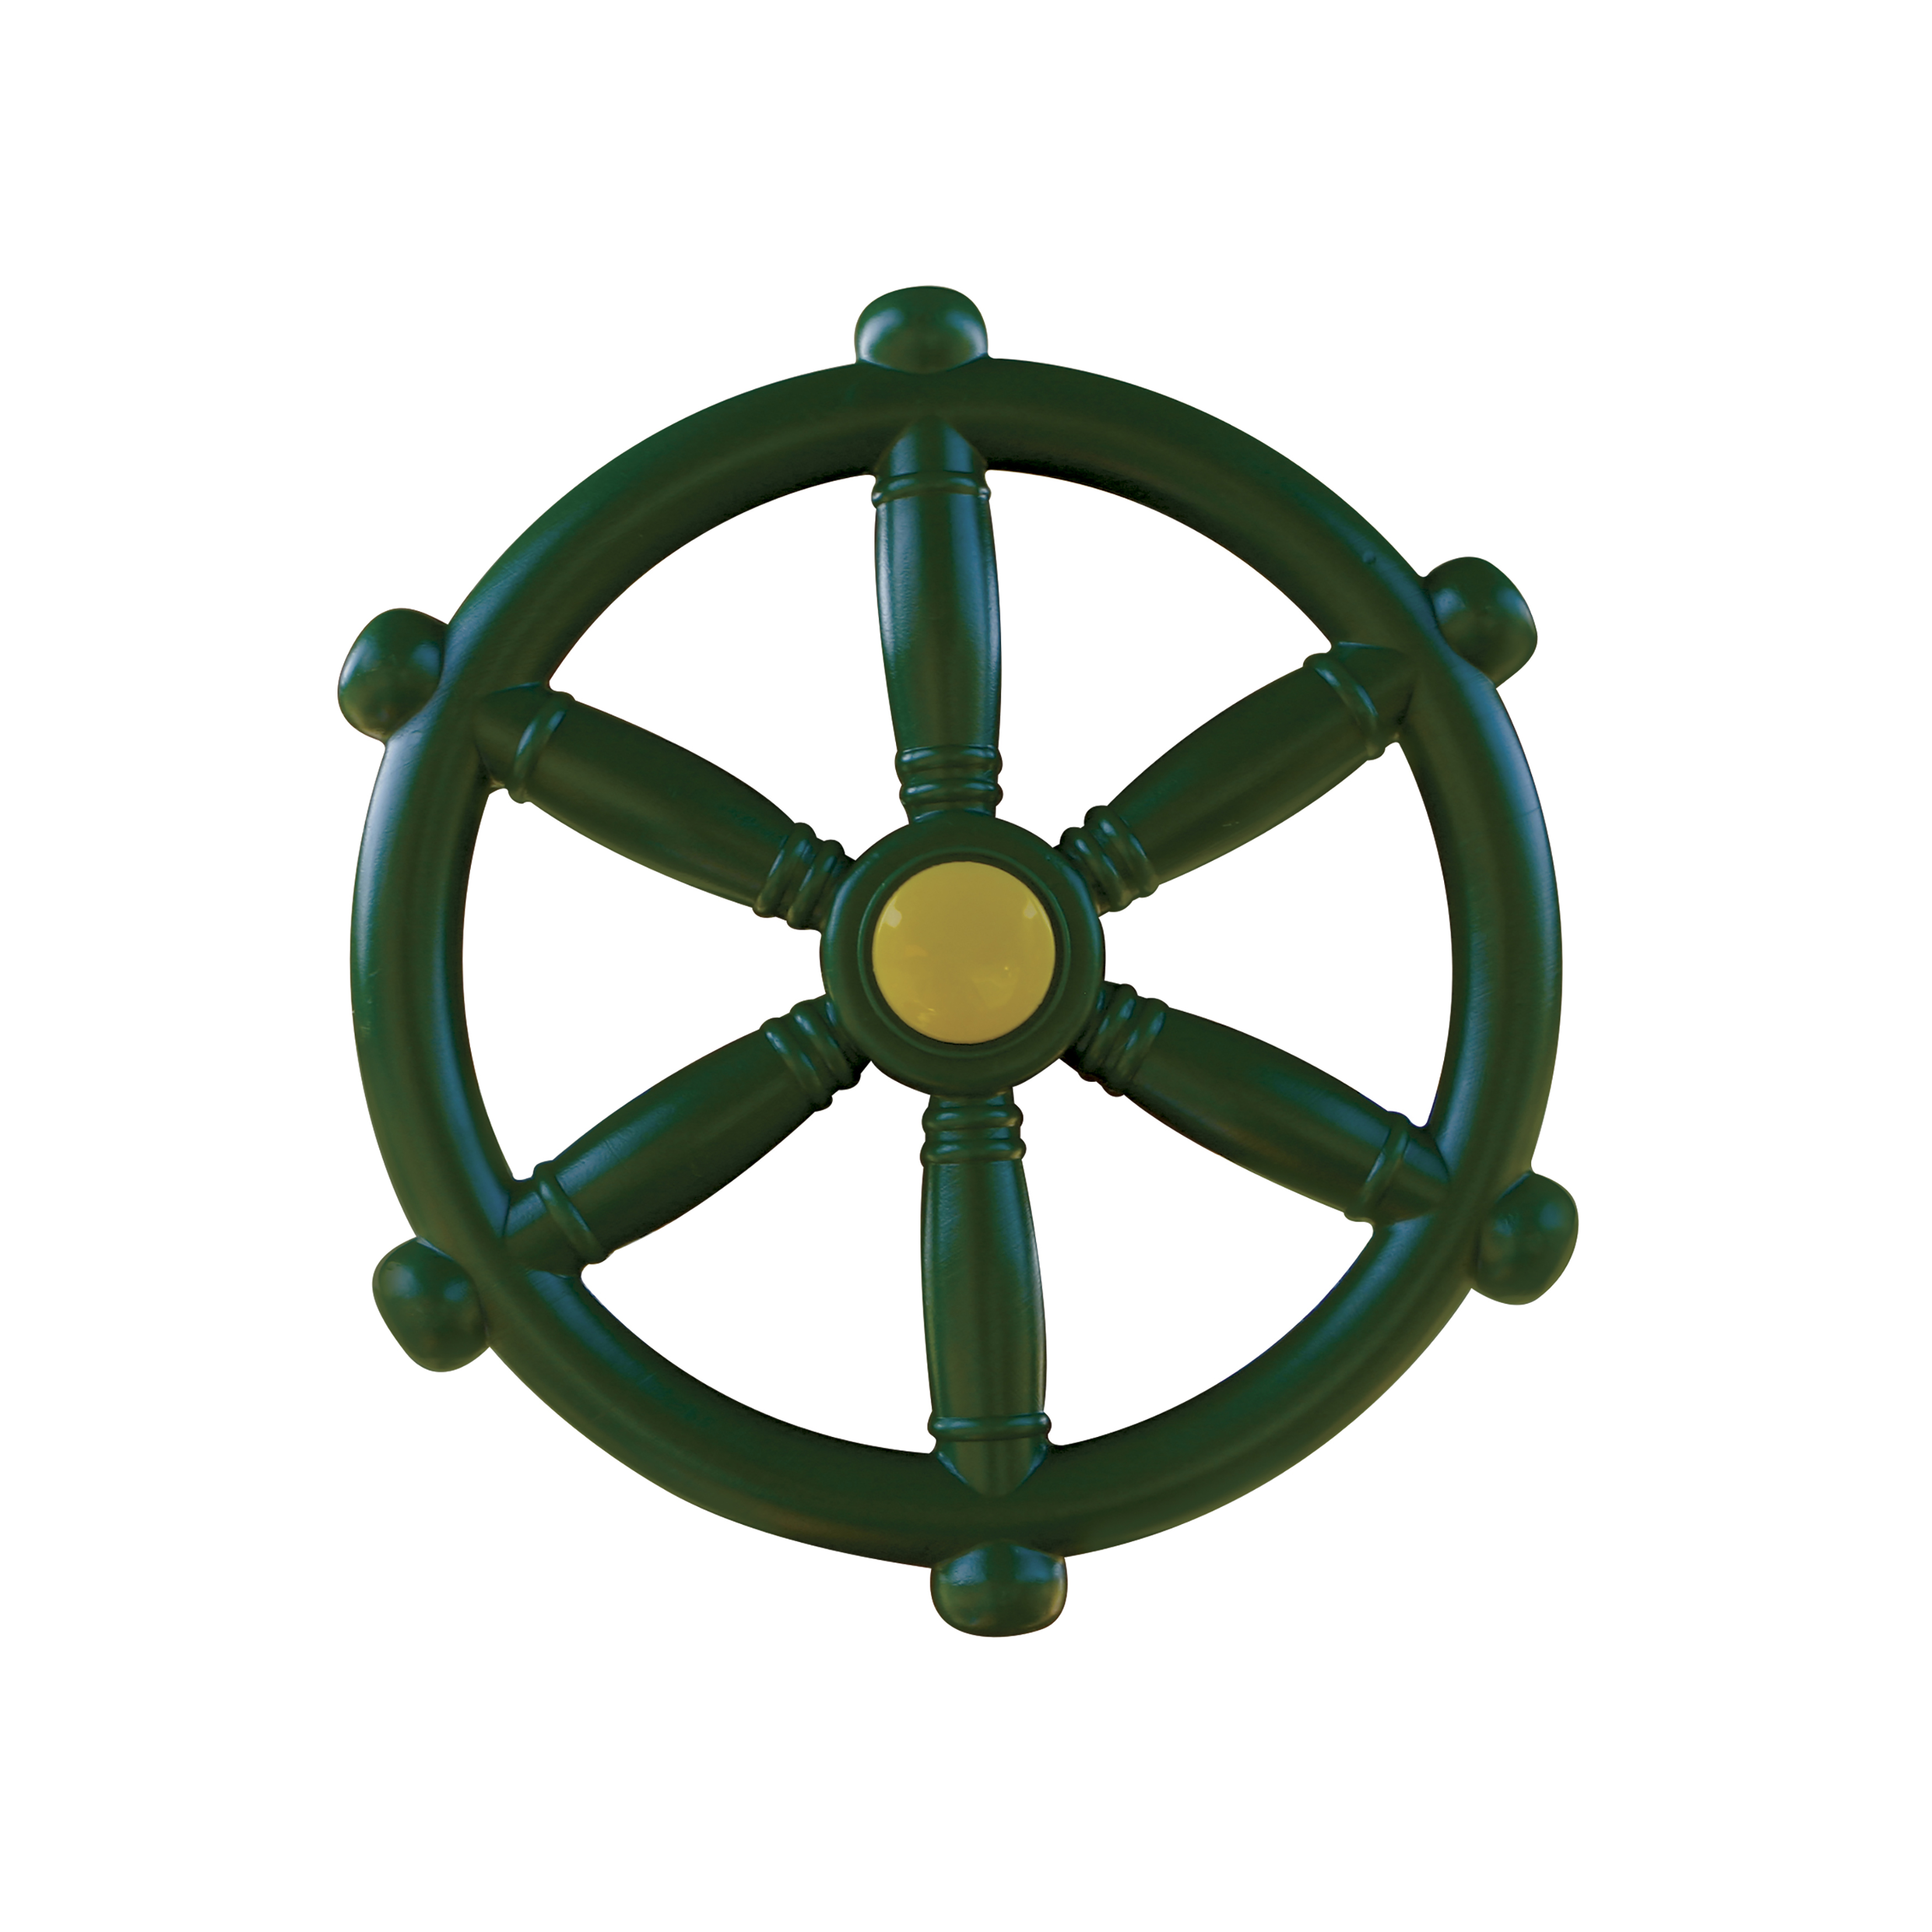 "Gorilla Playsets Ship's Wheel with Mounting Hardware, 12"" Diameter"